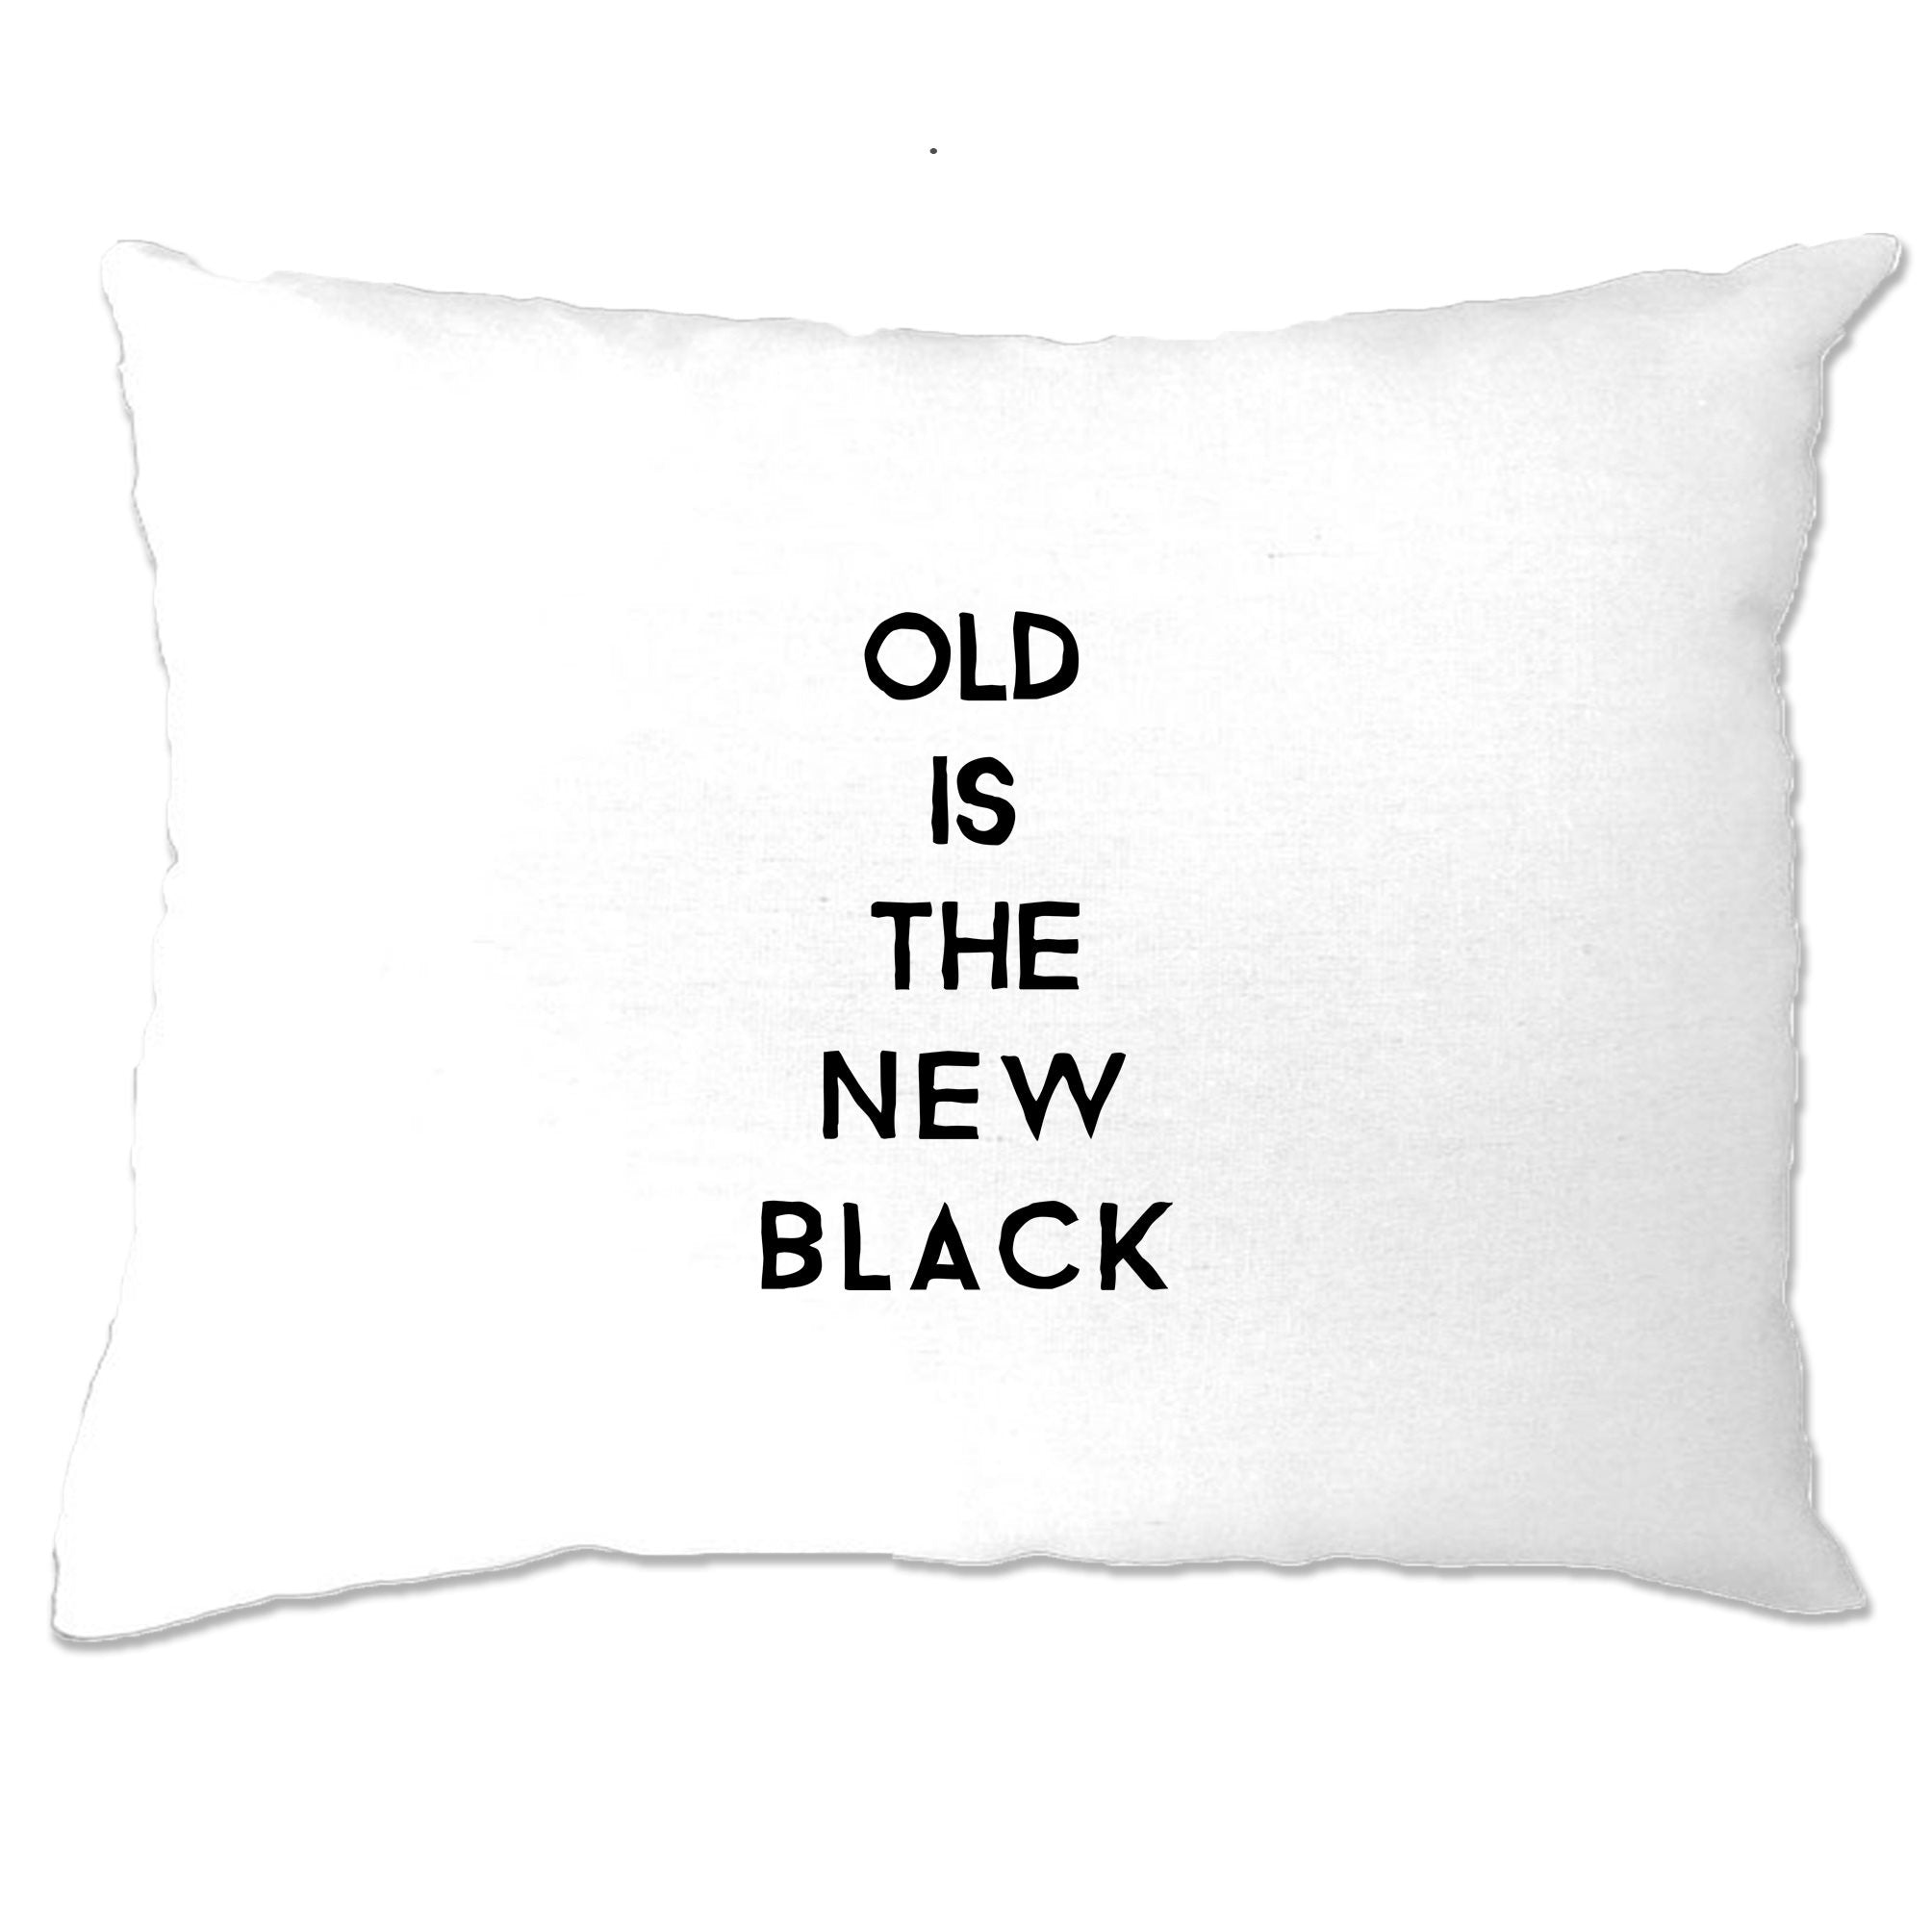 Birthday Pillow Case Old Is The New Black Slogan